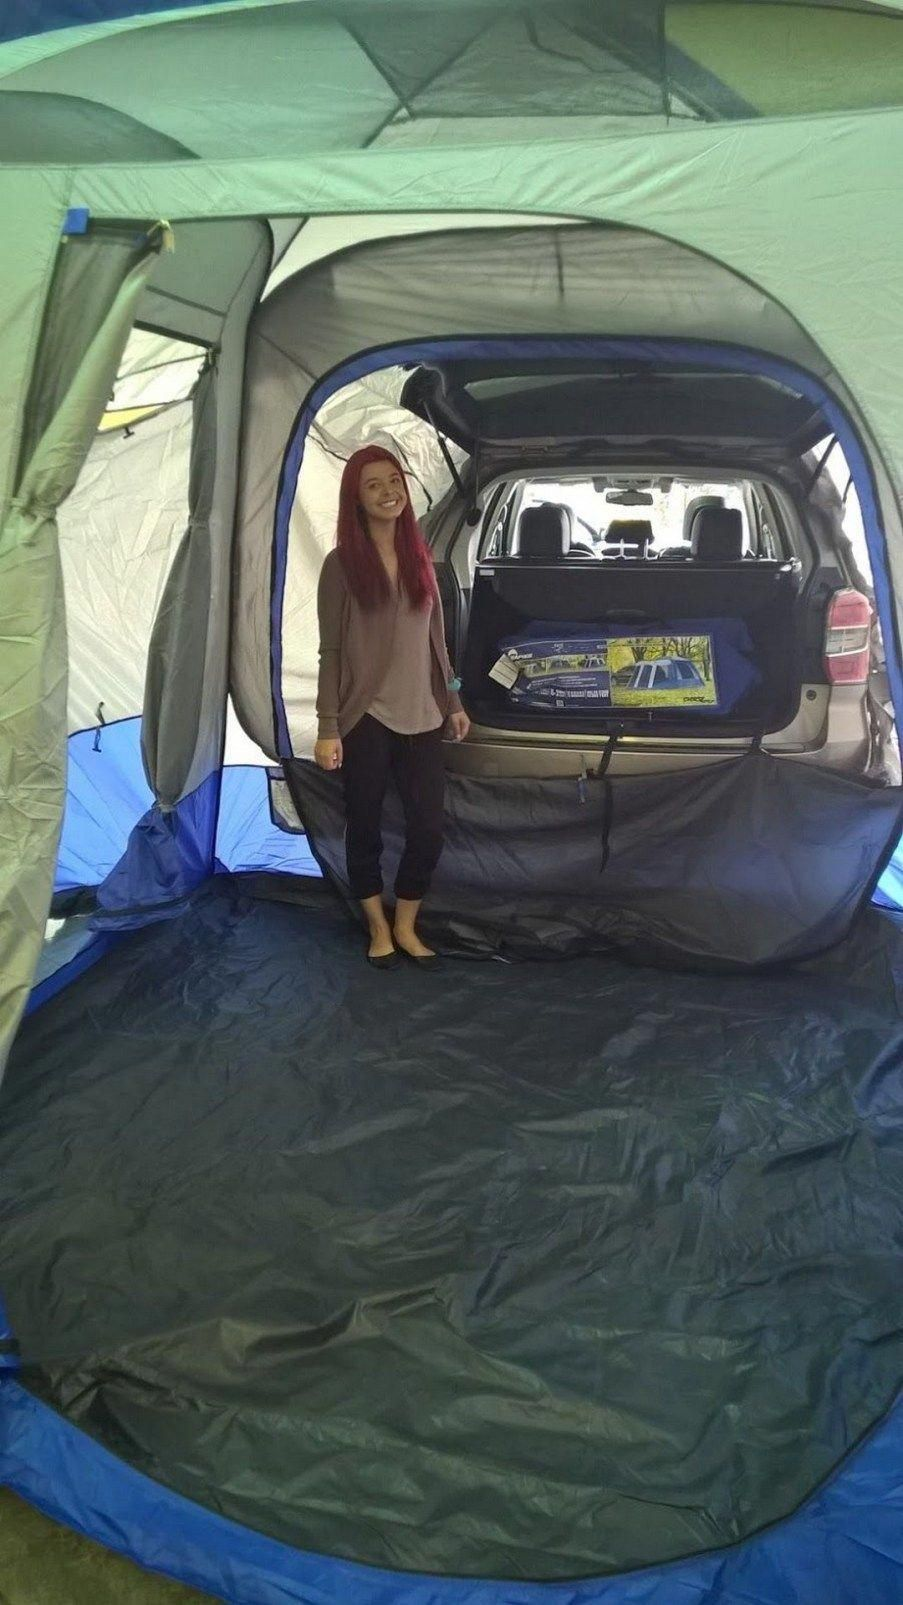 Tent camping in 2020 Suv camping, Tent camping, Suv tent